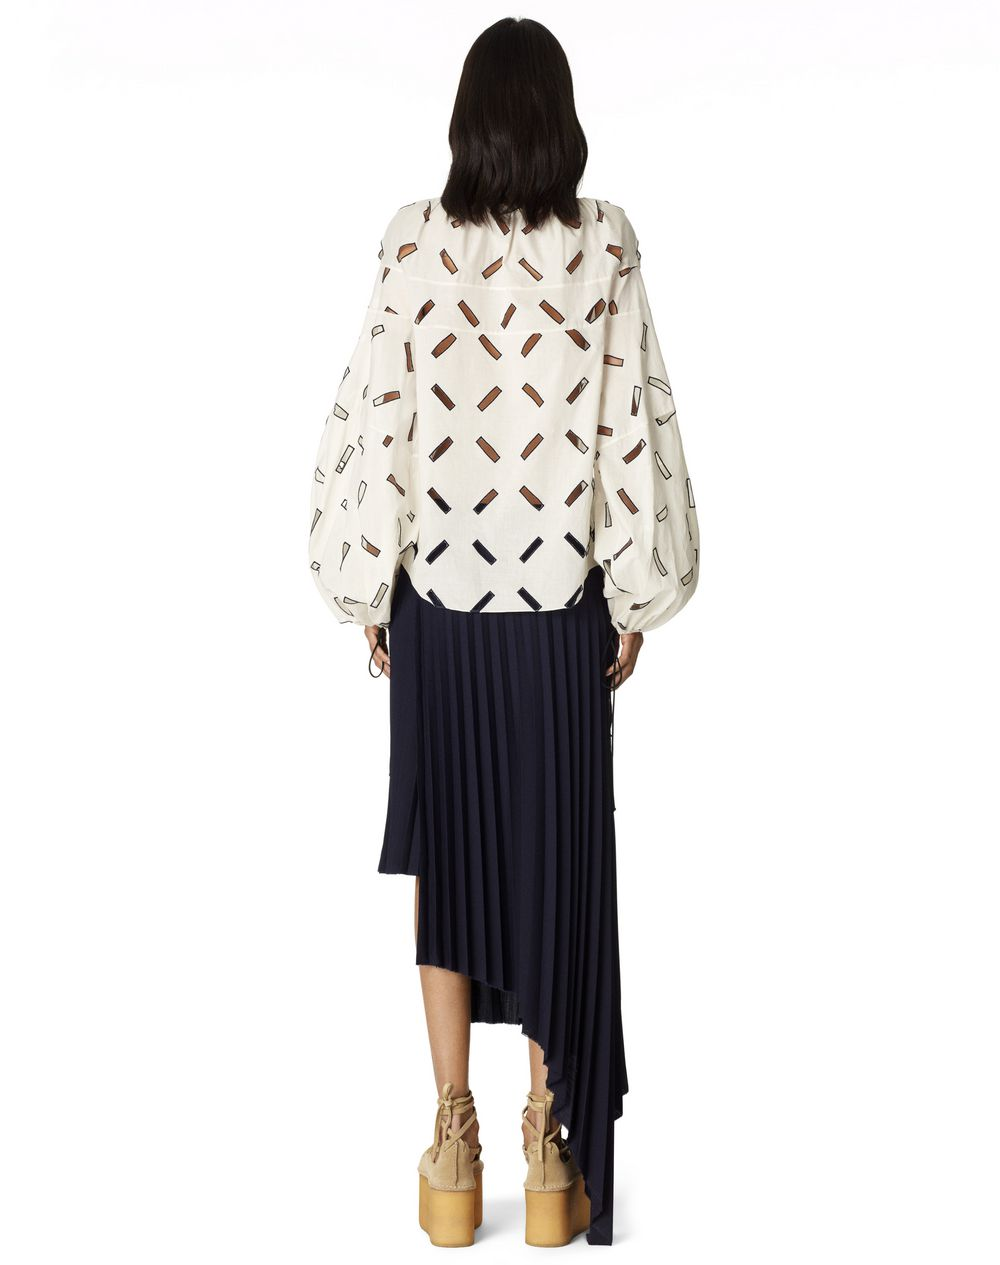 CUT-OUT HEART BLOUSE - Lanvin